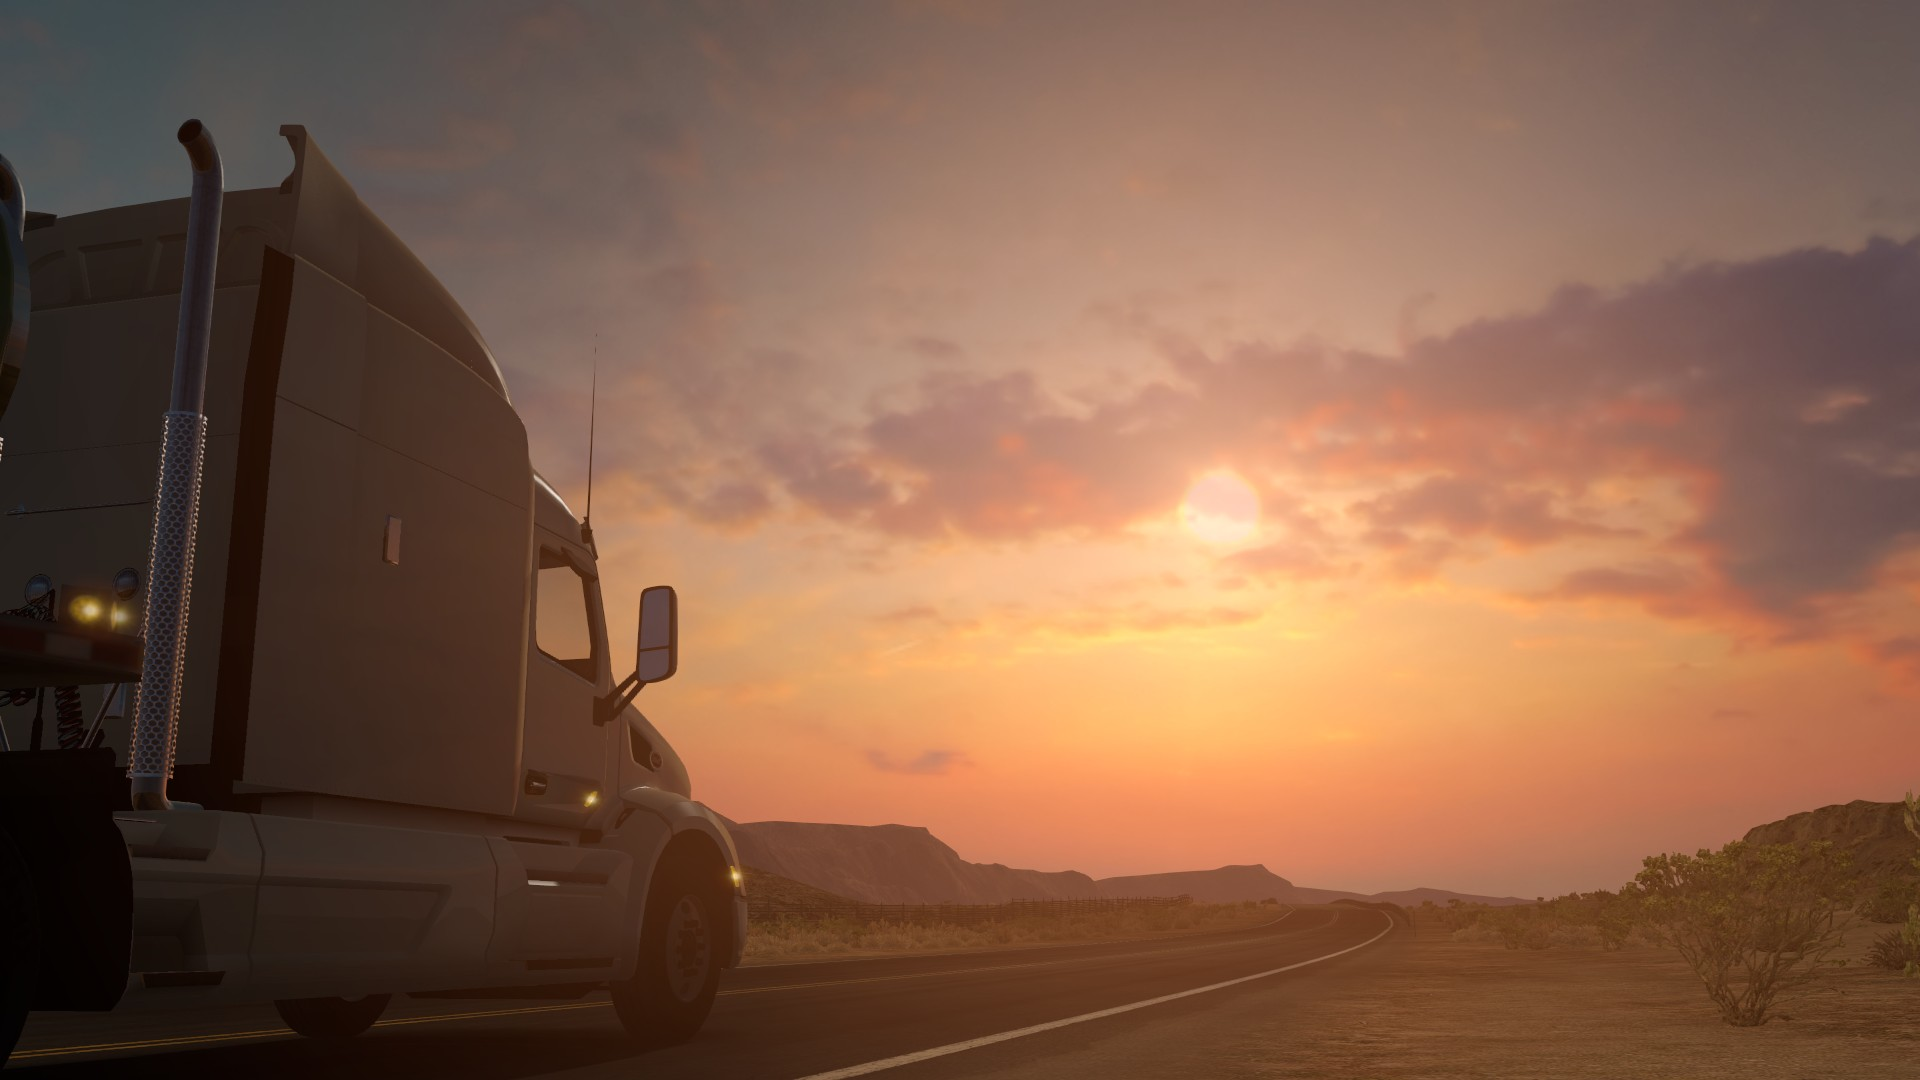 3d Home Hd Wallpaper American Truck Simulator Ats Trucks Peterbilt Kenworth